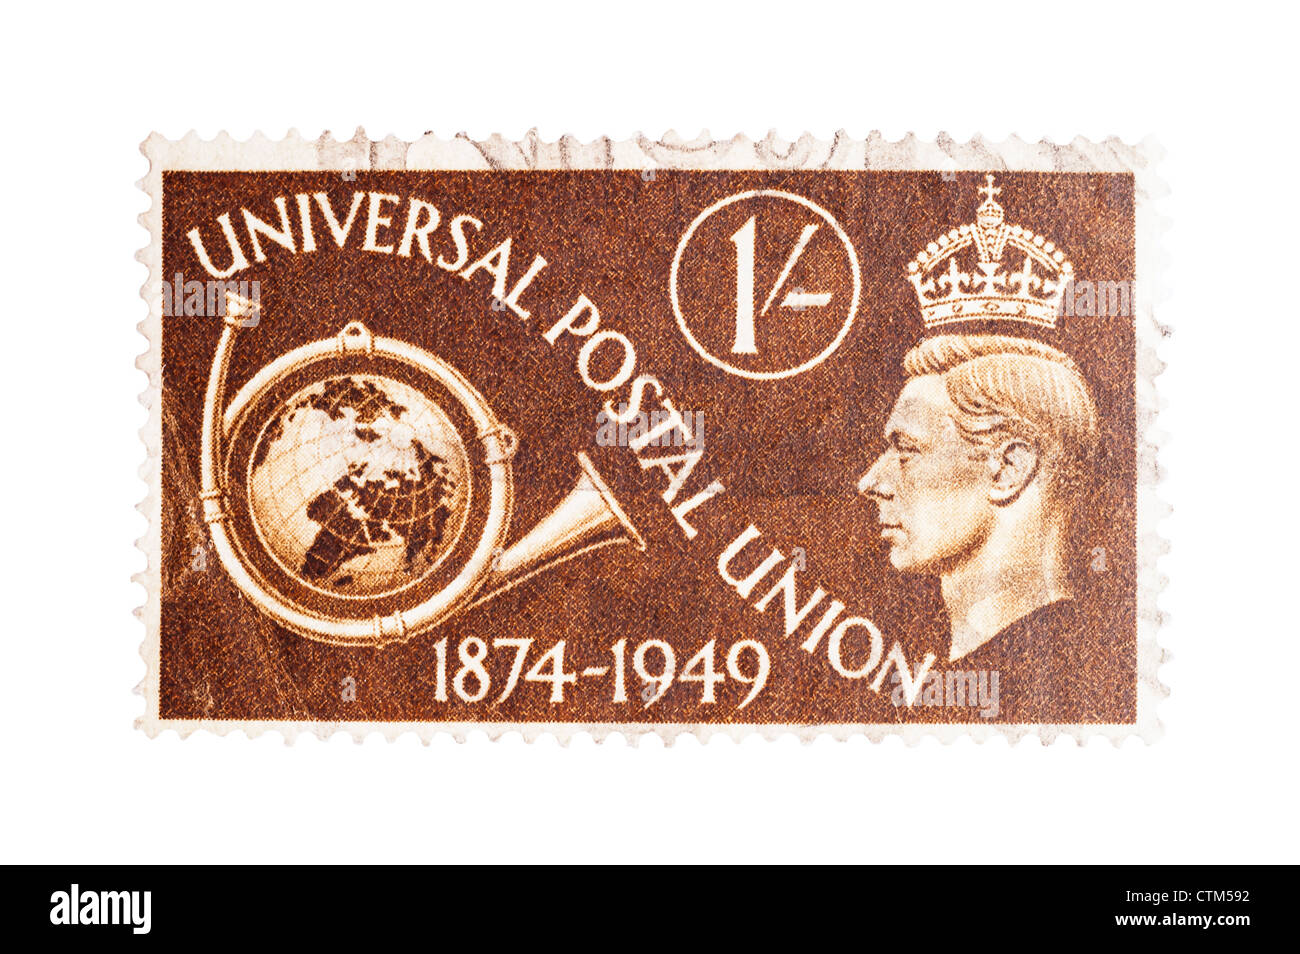 A King George VI one shilling brown 1s postage stamp on a white background - Stock Image